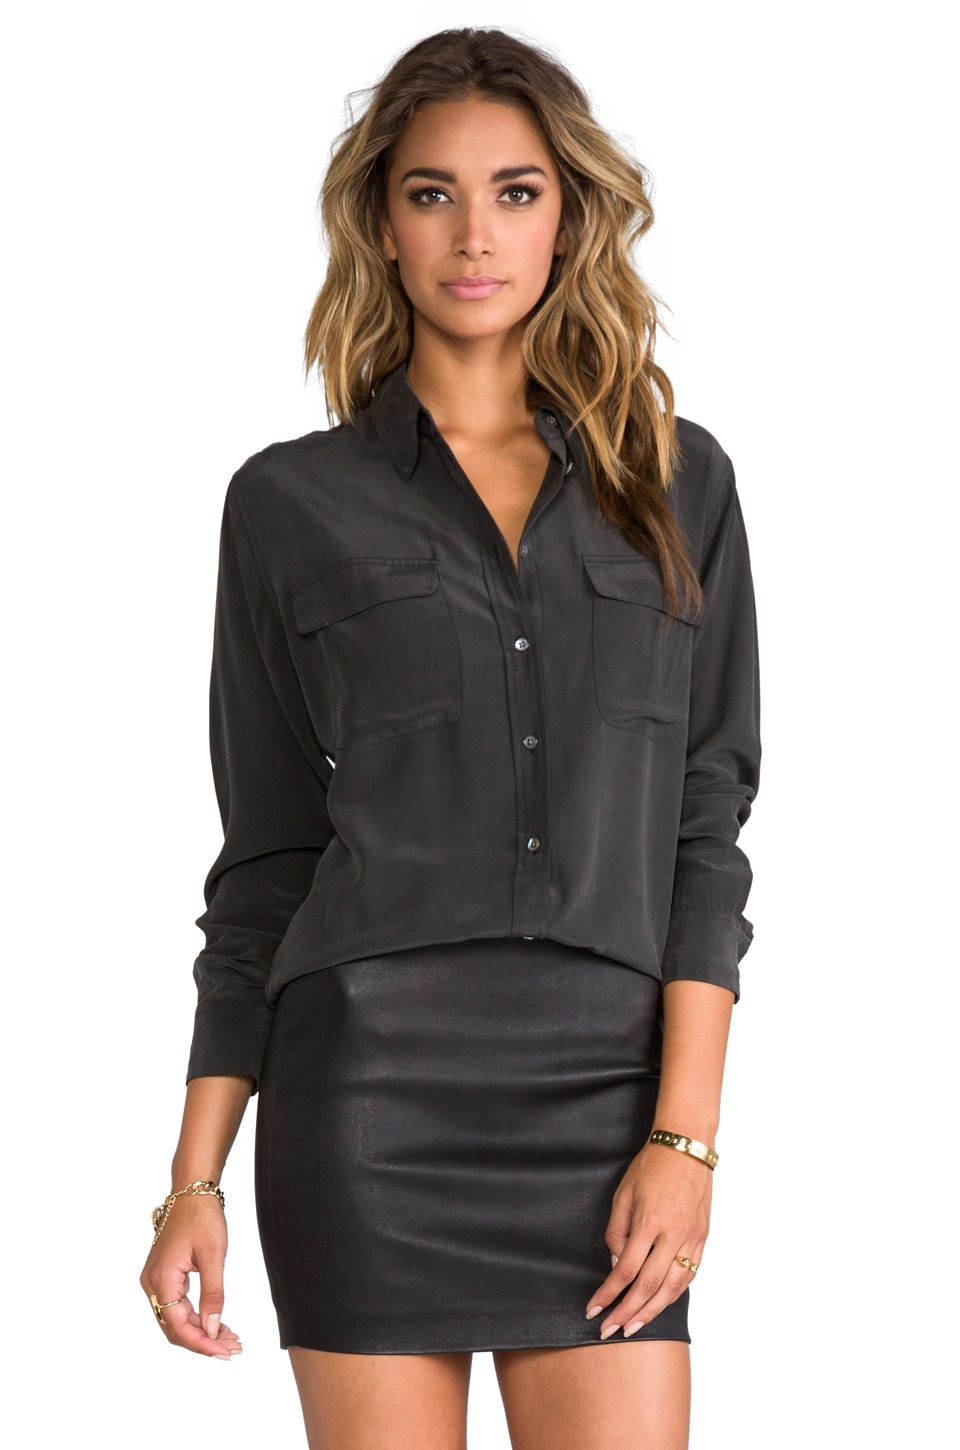 Equipment Signature Blouse in True Black